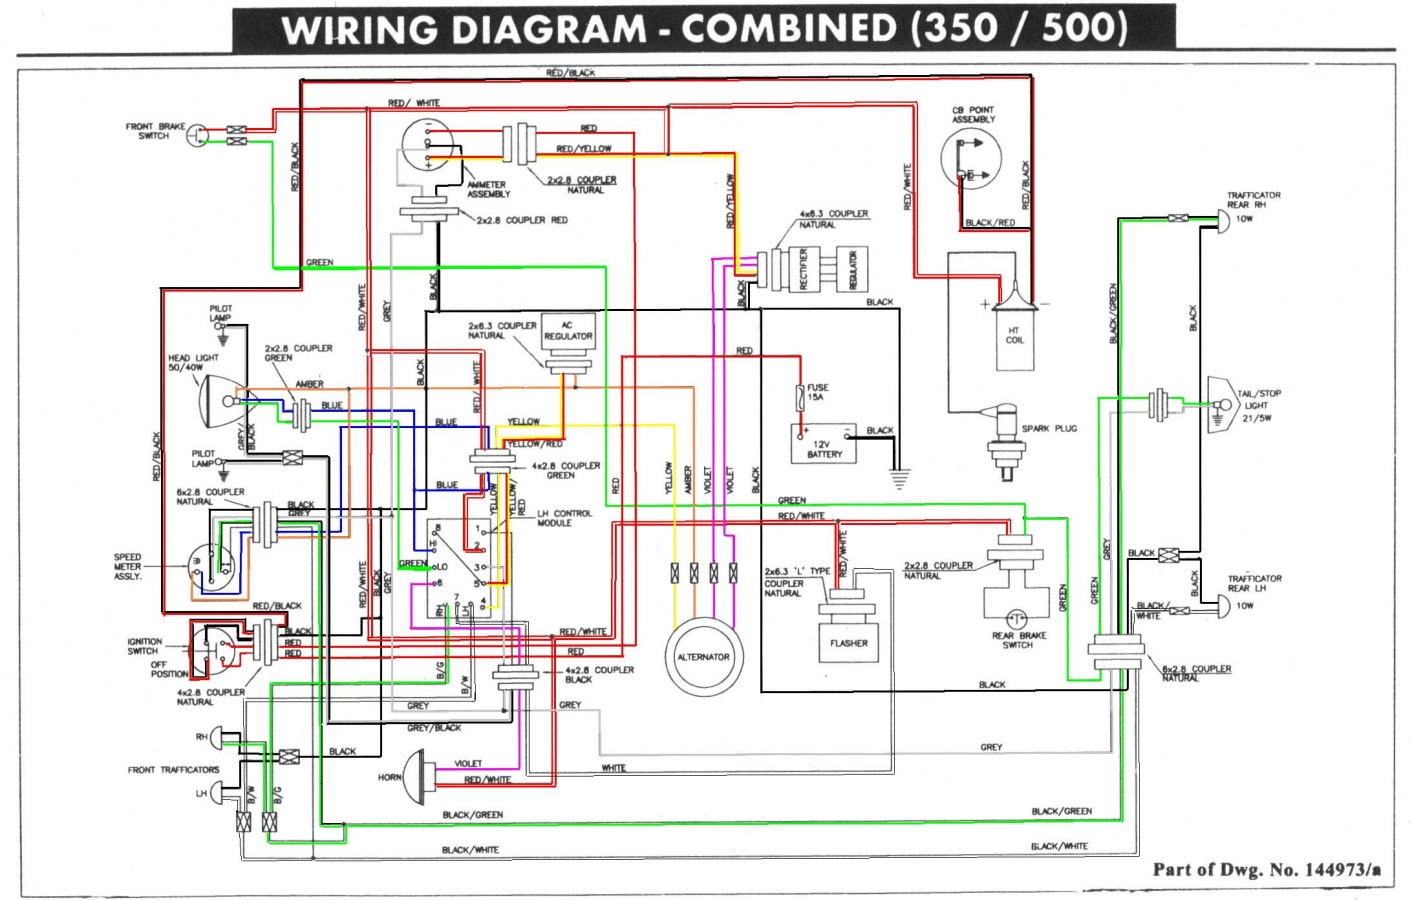 diagrams 875667 royal enfield 350 wiring diagram royal enfield free wiring schematics at cos-gaming.co